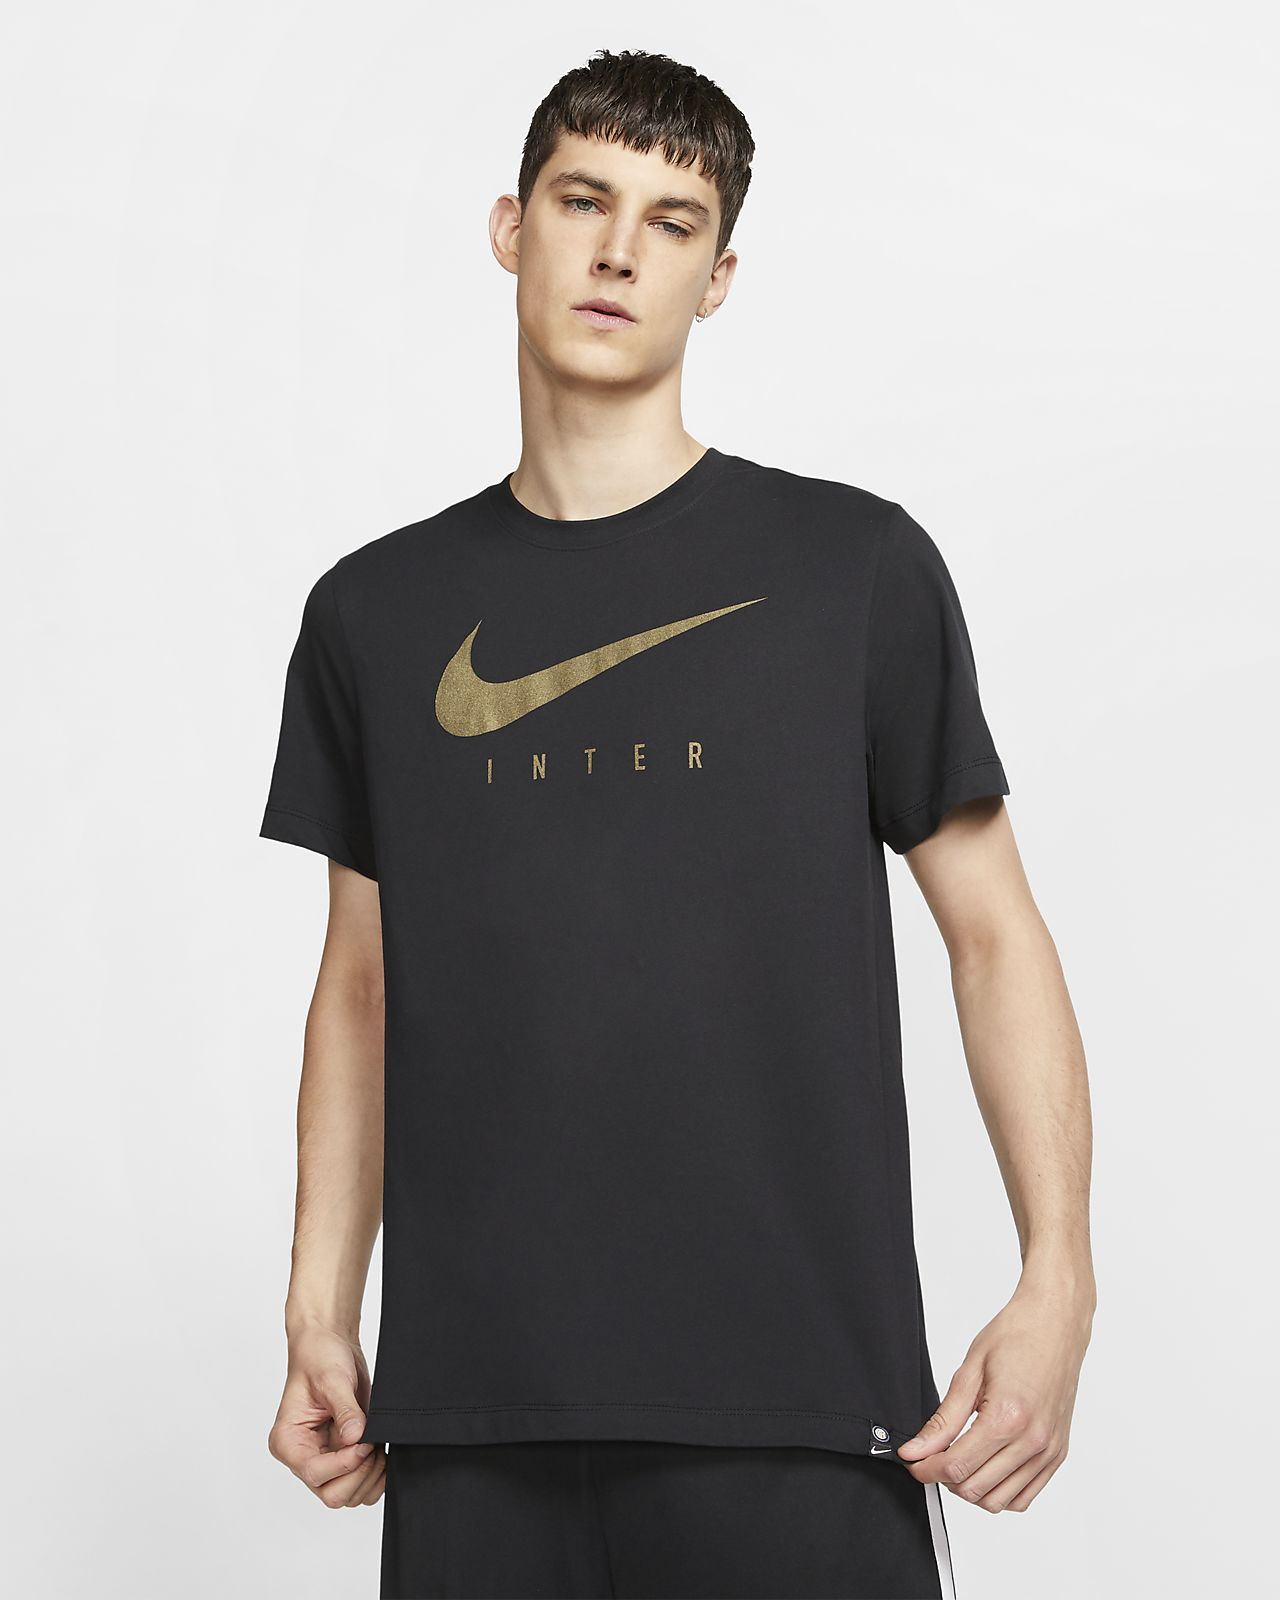 Tee-shirt de football Nike Dri-FIT Inter Milan pour Homme